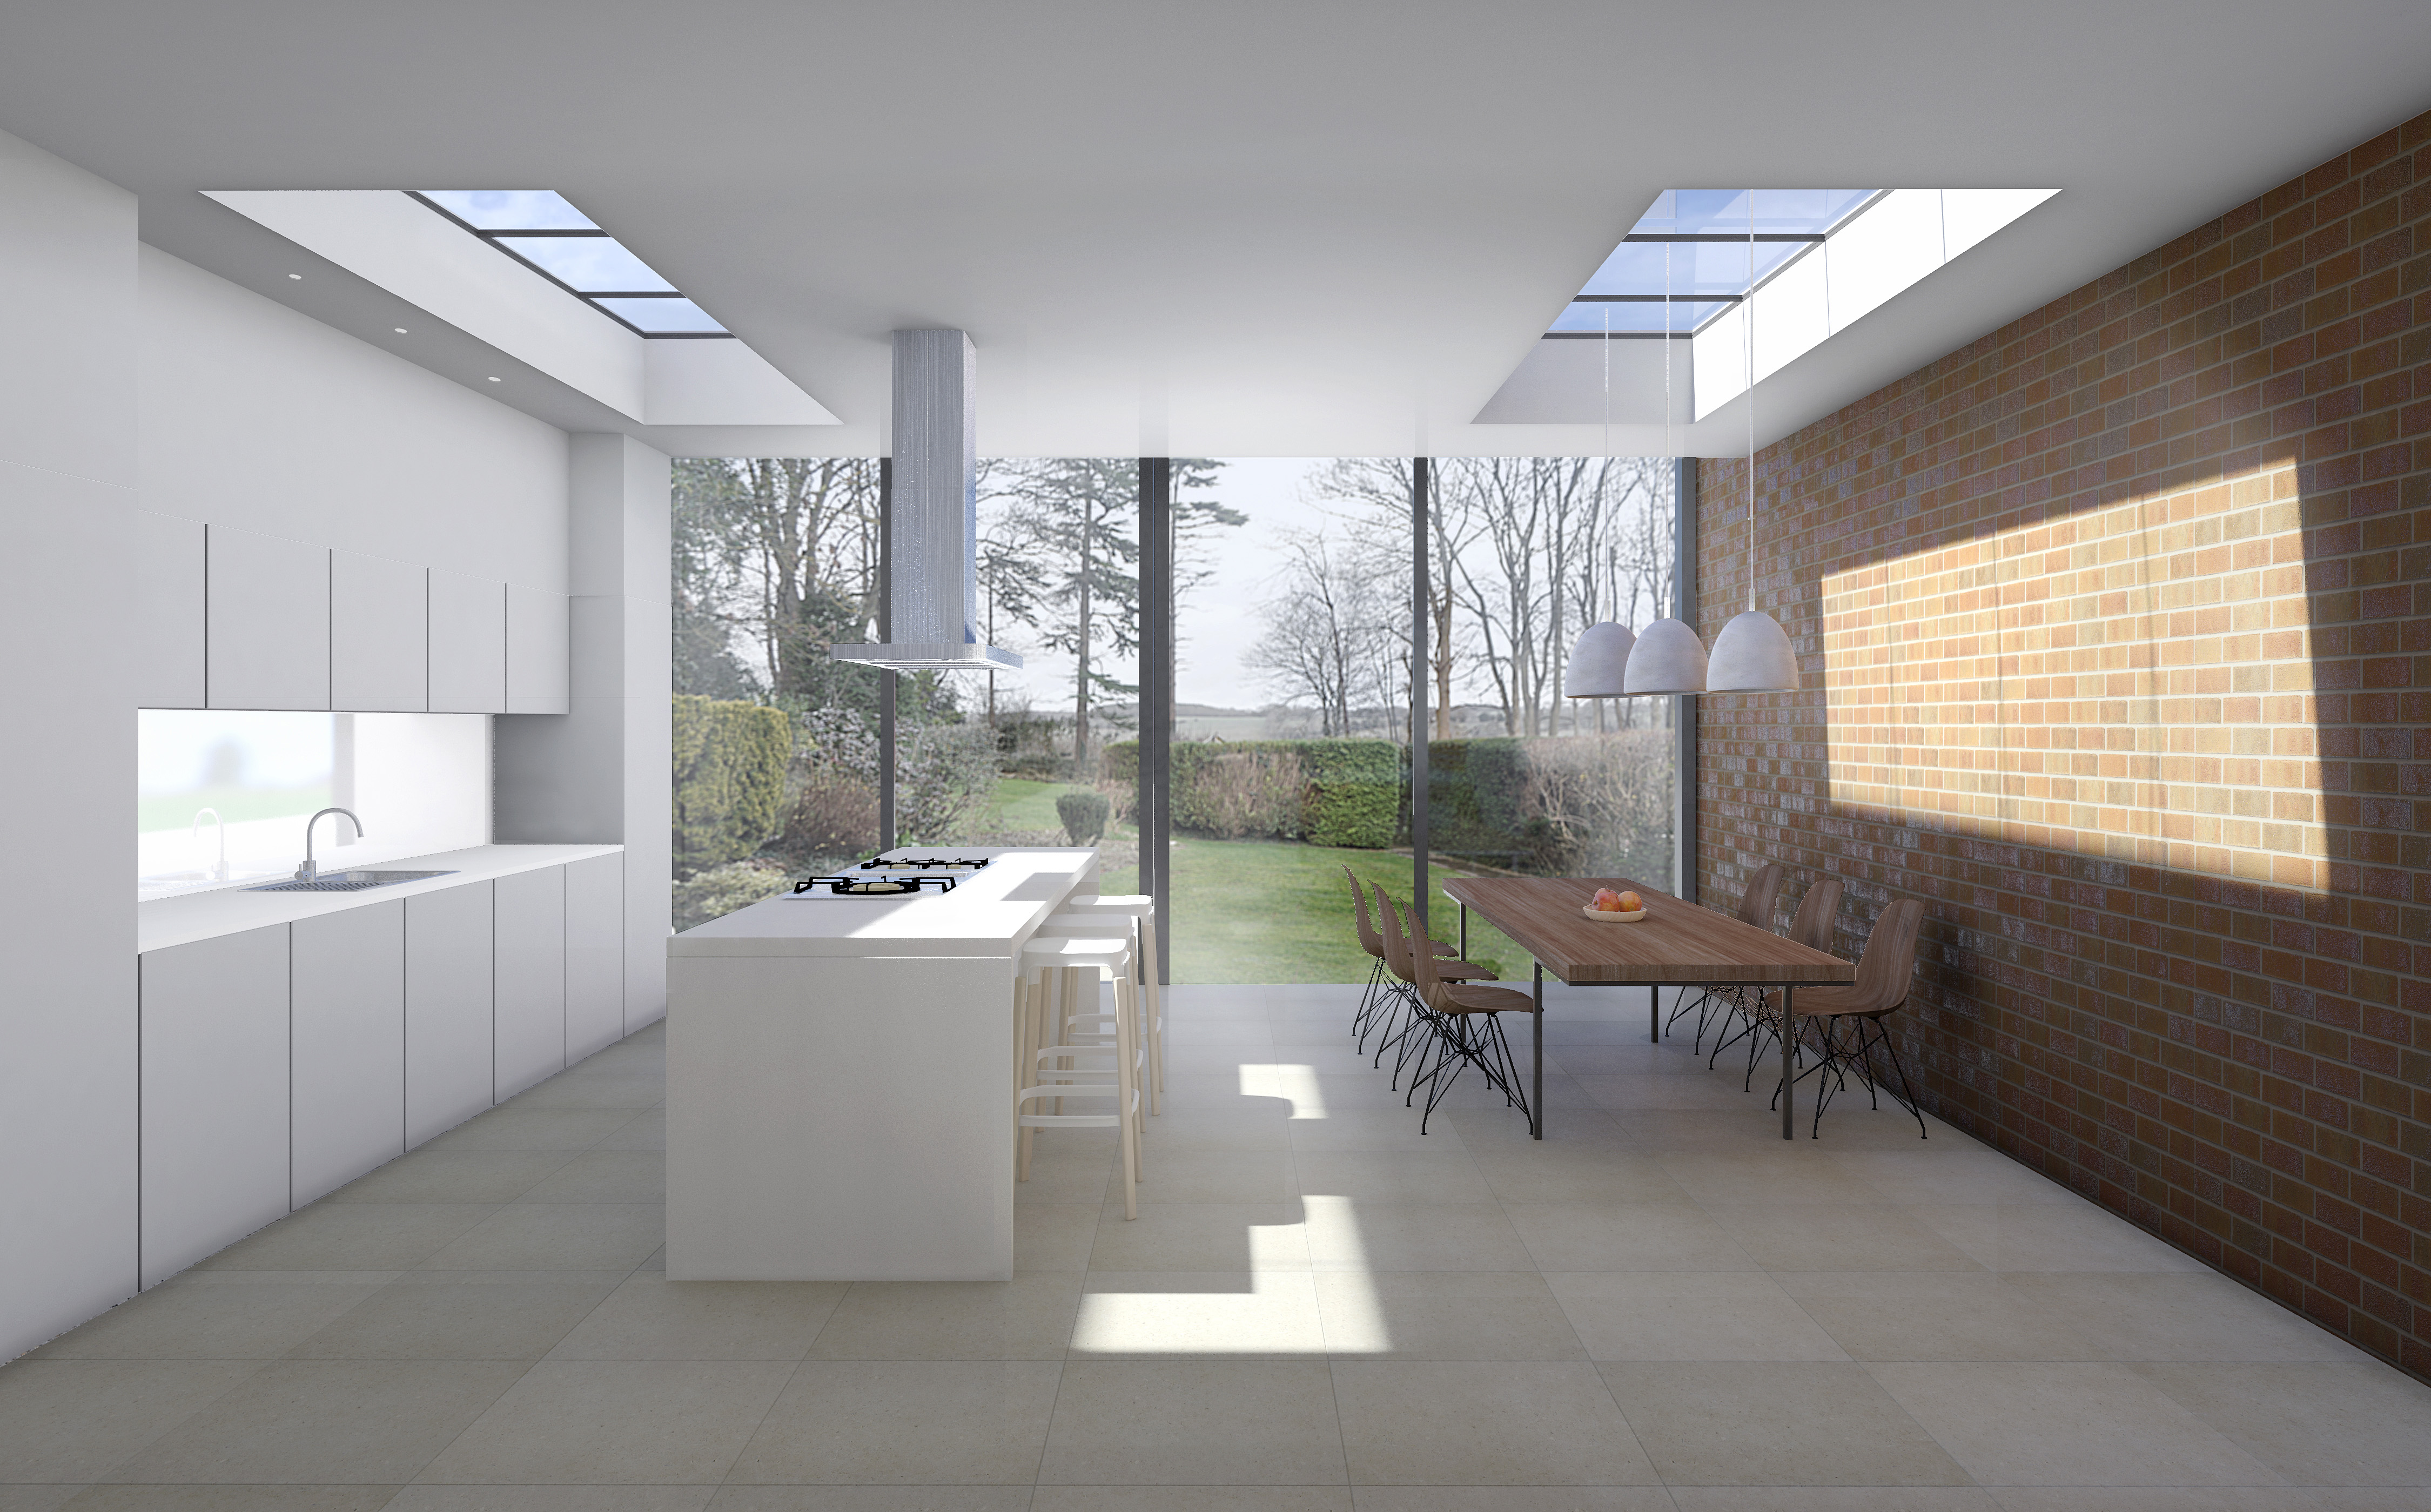 </p> <p>Find your ideal home design pro on designfor-me.com - get matched and see who's interested in your home project. Click image to see more inspiration from our design pros</p> <p>Design by Ayca, Interior designer from Wandsworth, London</p> <p> #interiordesign #interiors #homedecor #homeinspiration #extensions #extensiondesign #extensioninspiration #extensionideas #houseextension #exposedbrick #skylights #rooflights </p> <p>